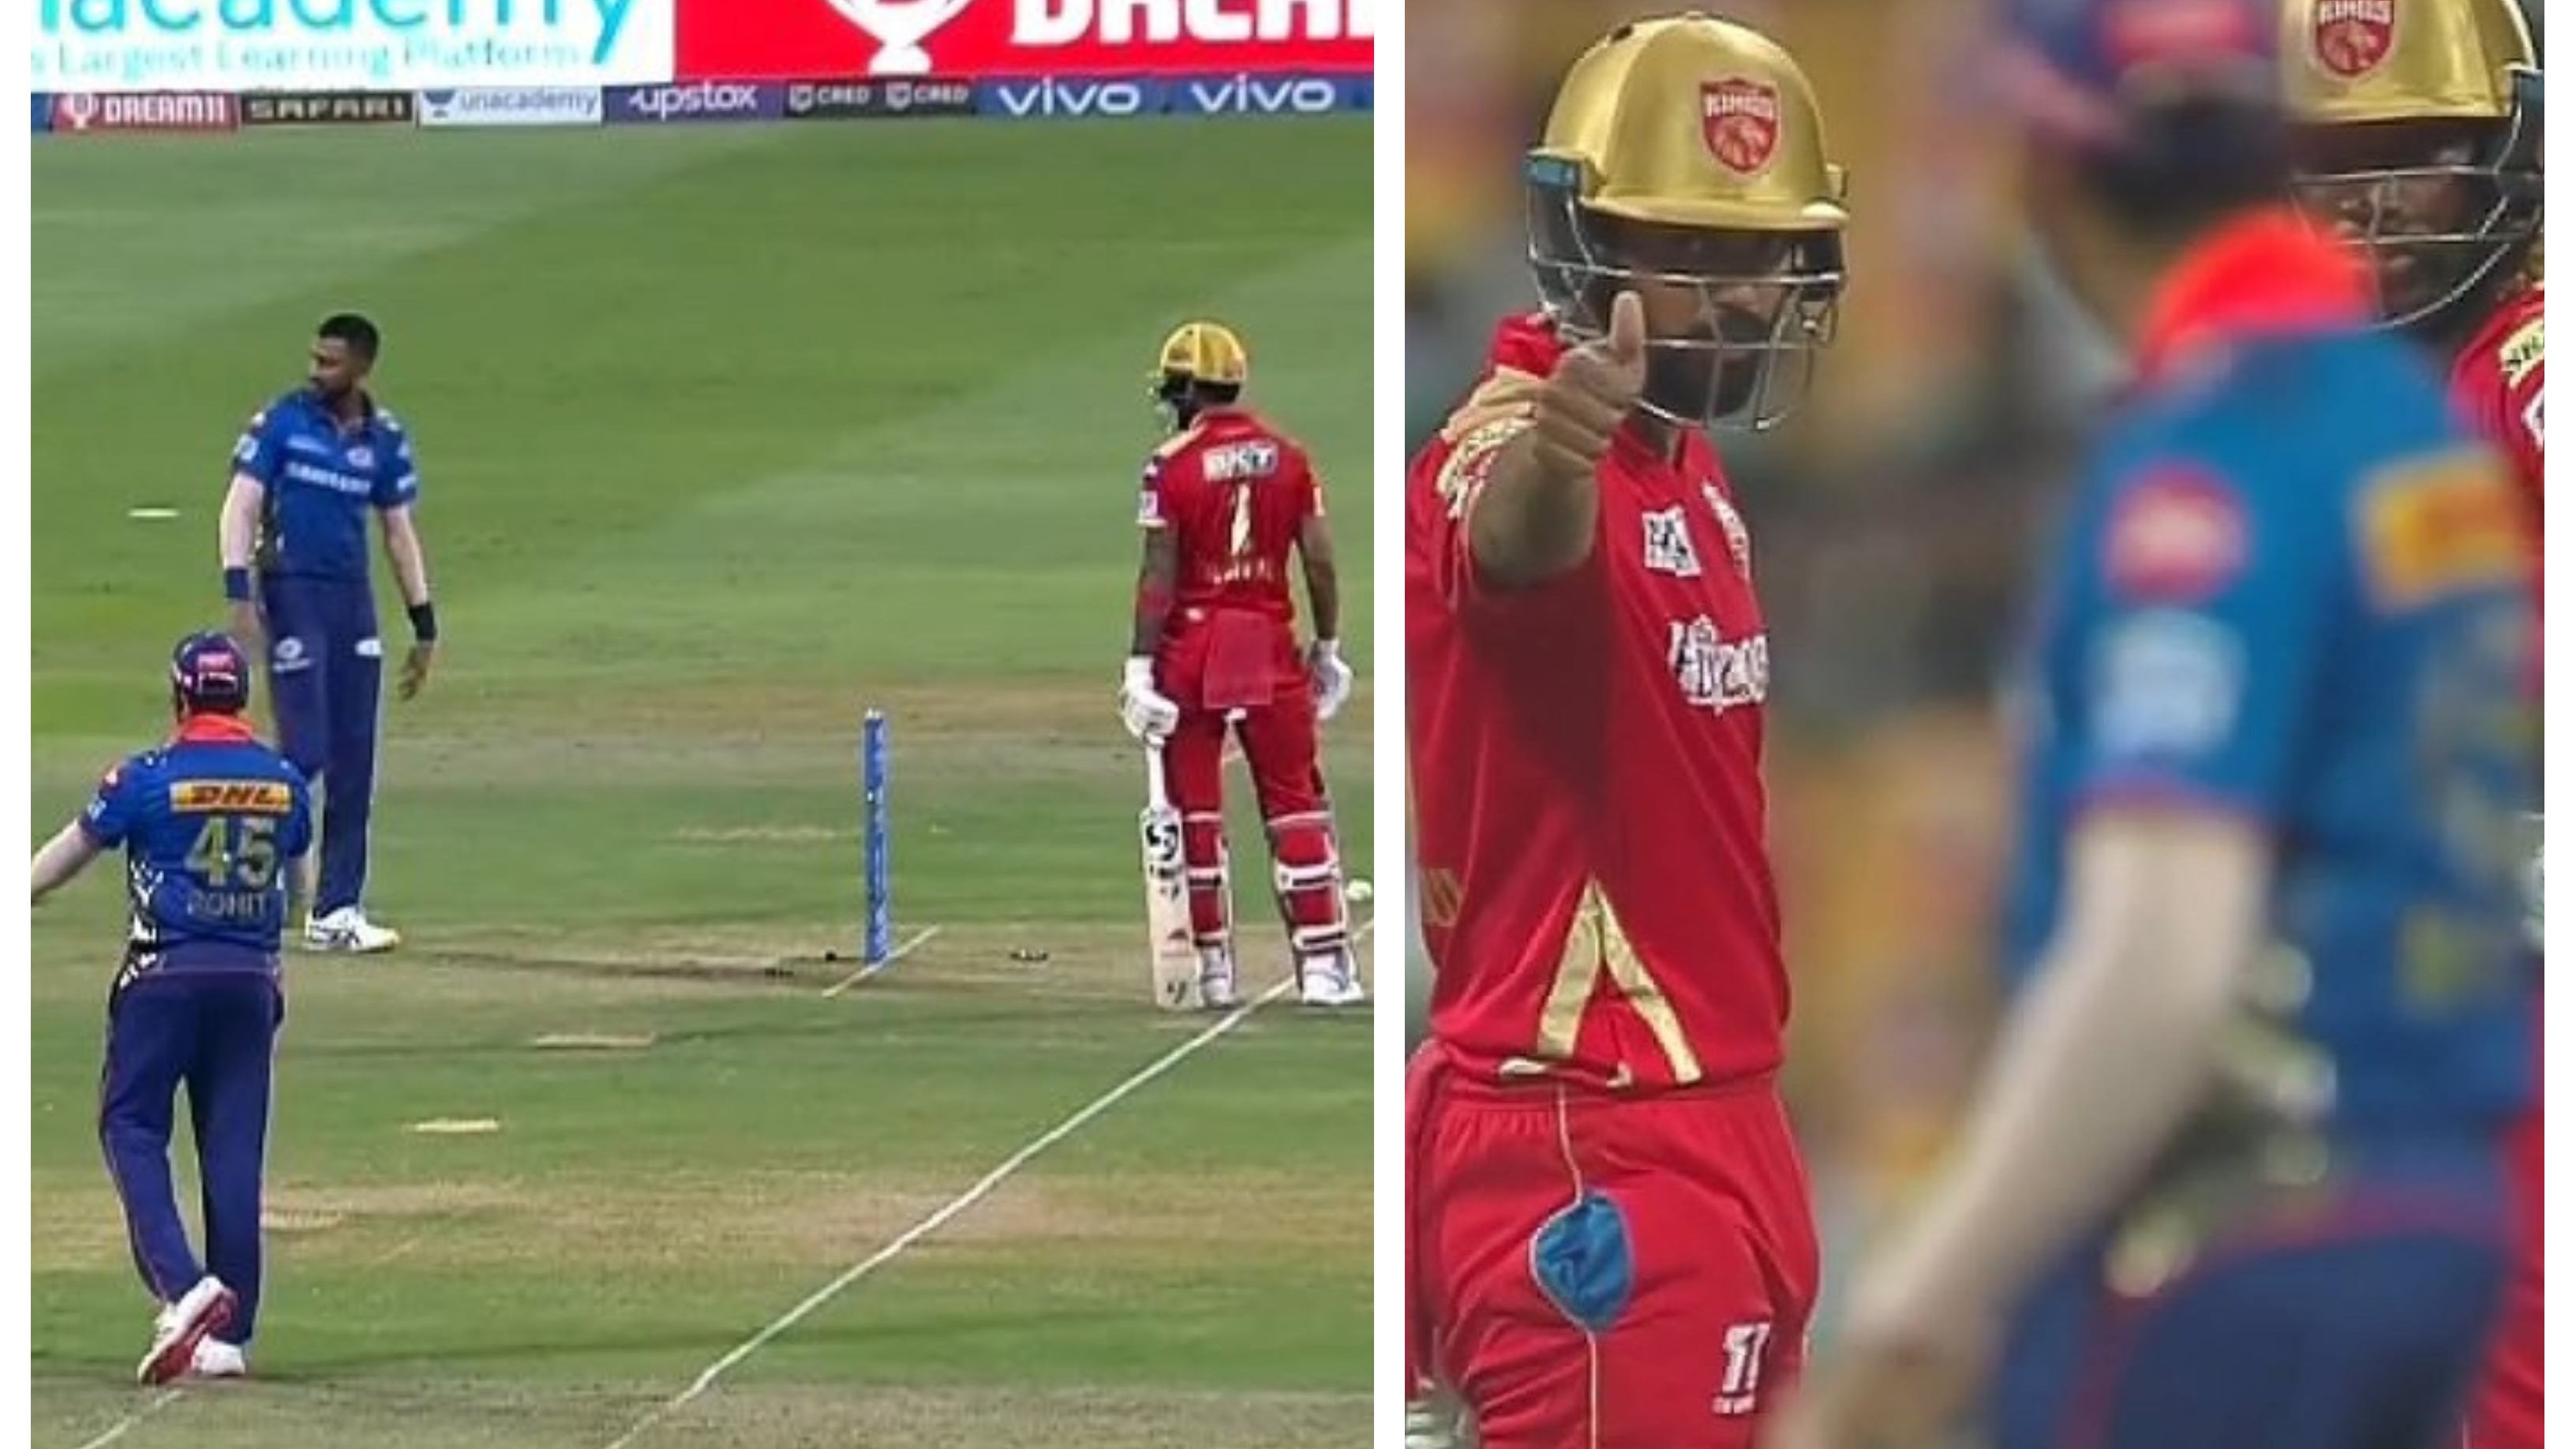 IPL 2021: WATCH – Krunal Pandya takes back run-out appeal against KL Rahul at non-striker's end